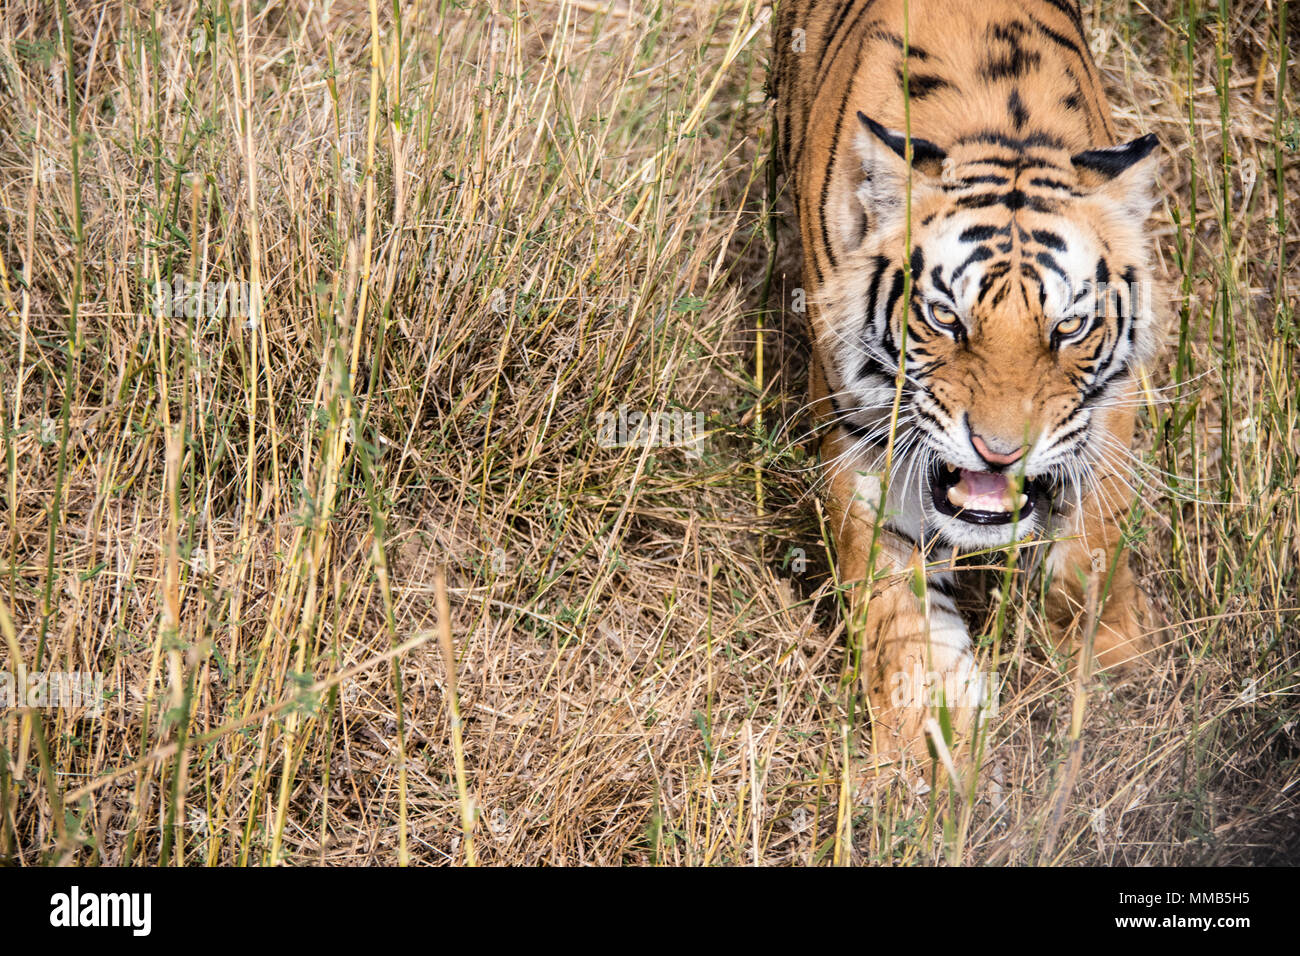 Wild Bengal Tiger, Panthera tigris tigris, snarling, Bandhavgarh Tiger Reserve, India Stock Photo